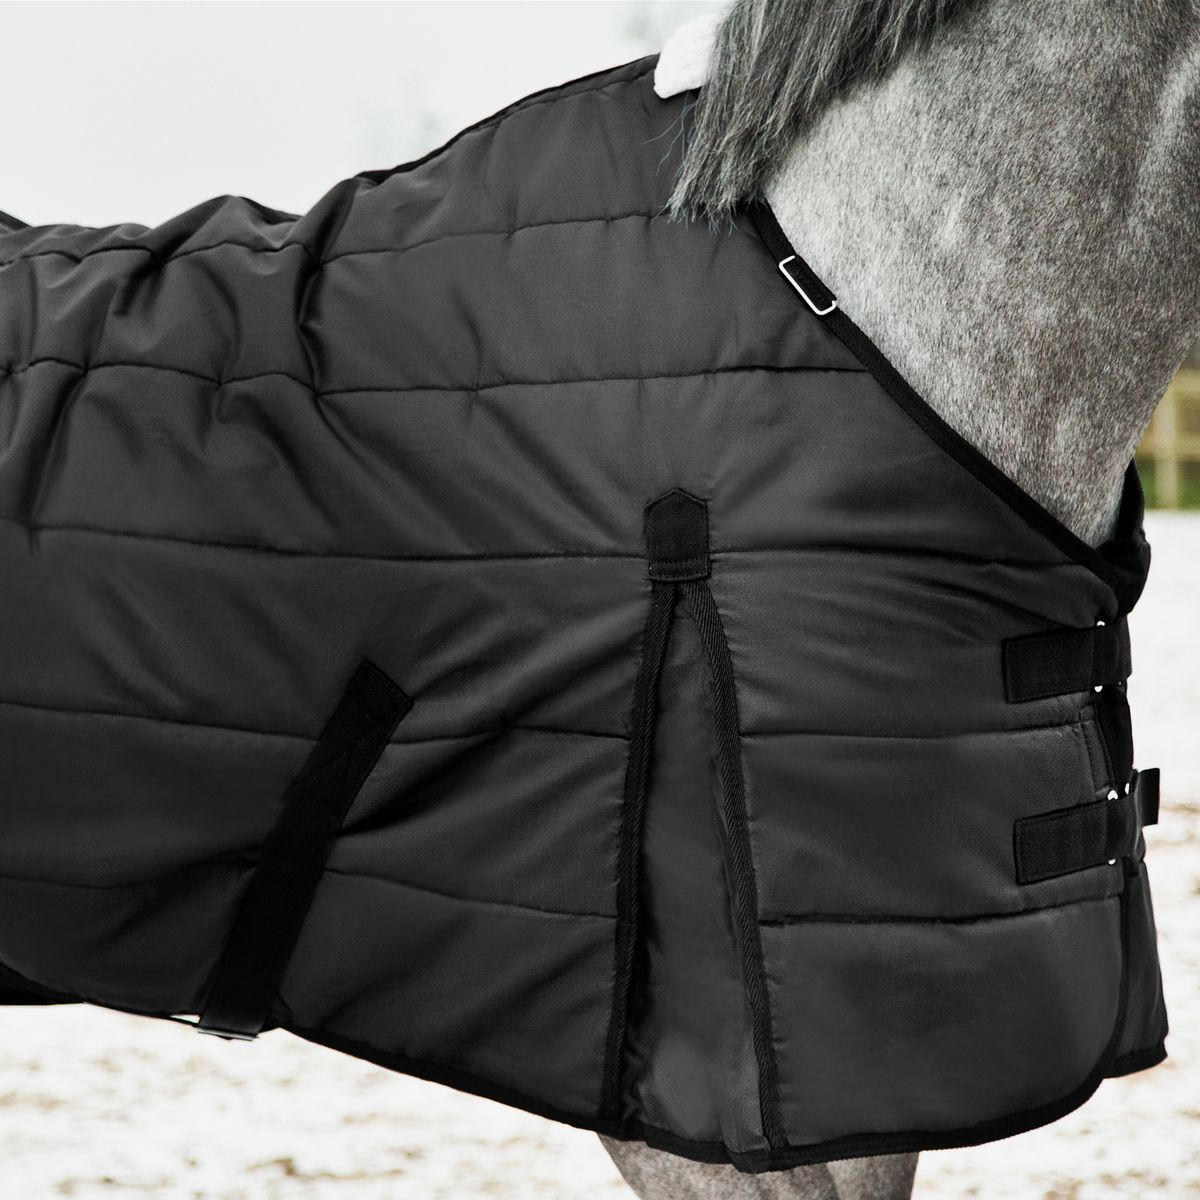 Horze Nevada stable Cool Weather Blanket 200 g